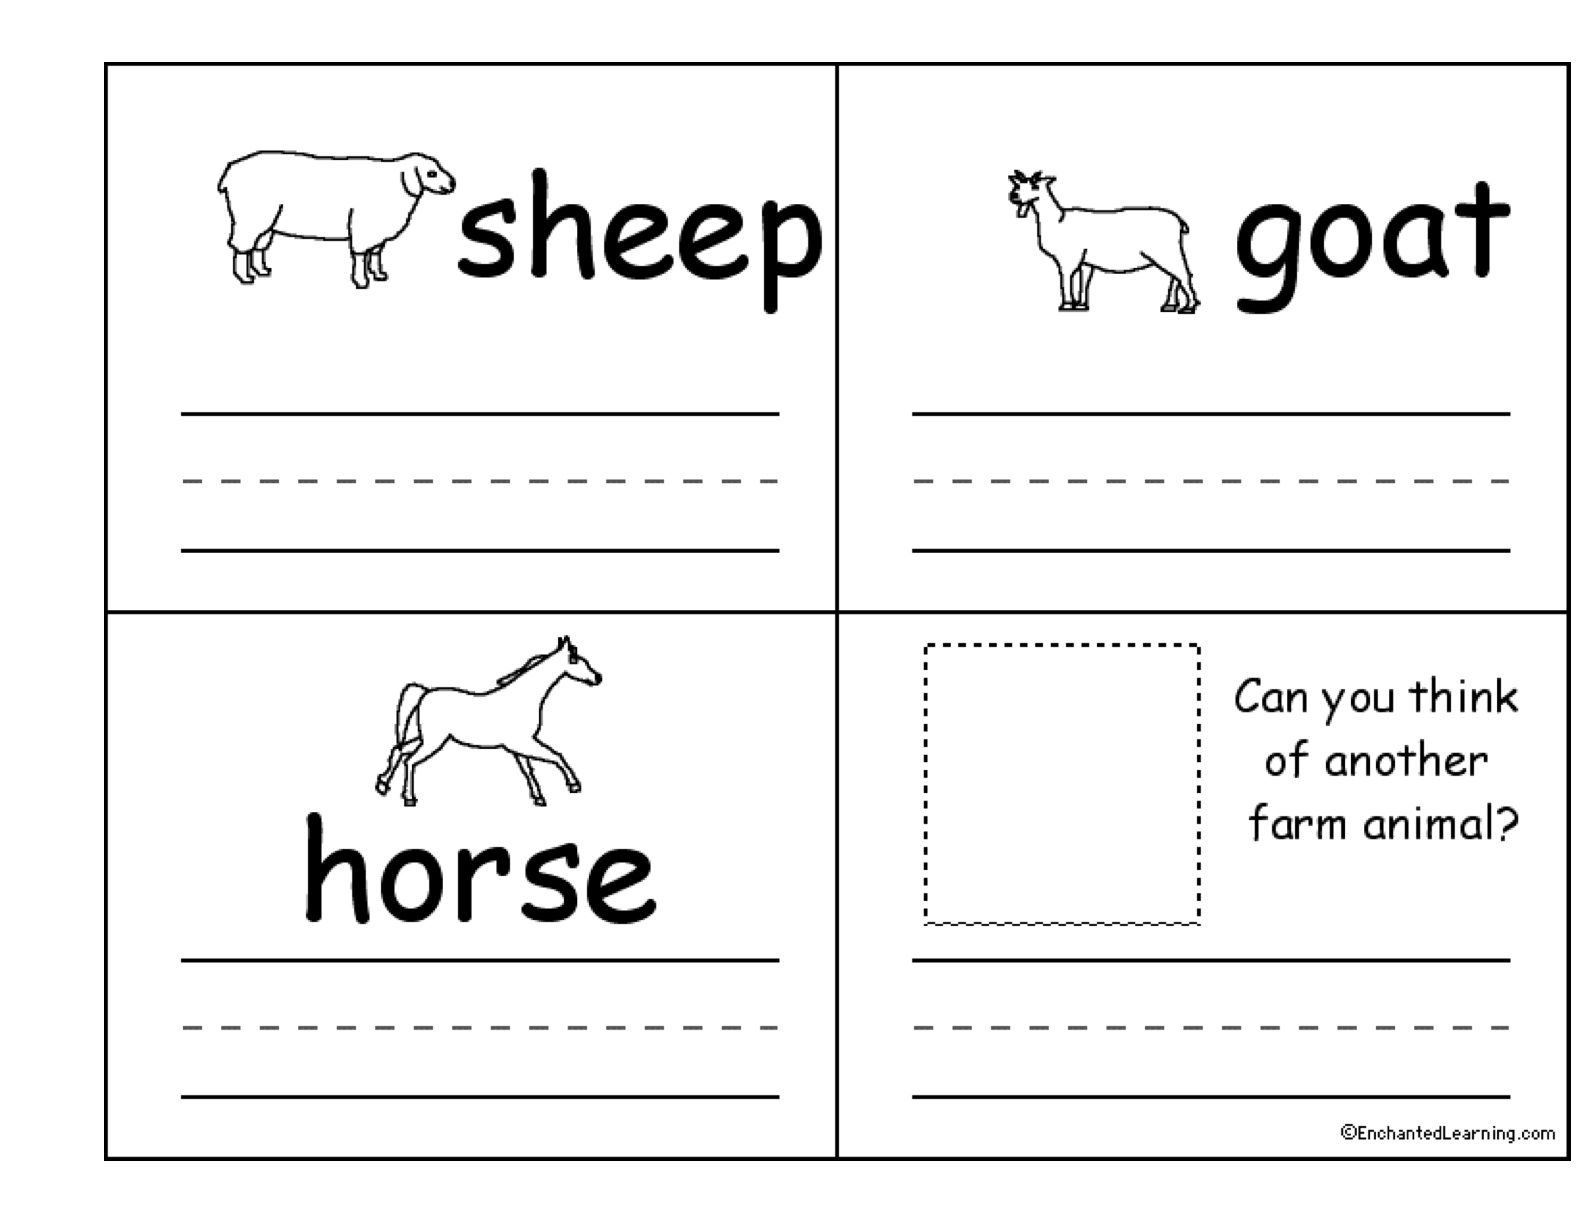 worksheet Farm Animal Worksheets 17 best images about farm curriculum on pinterest zoo scavenger hunts worksheets for kindergarten and unit